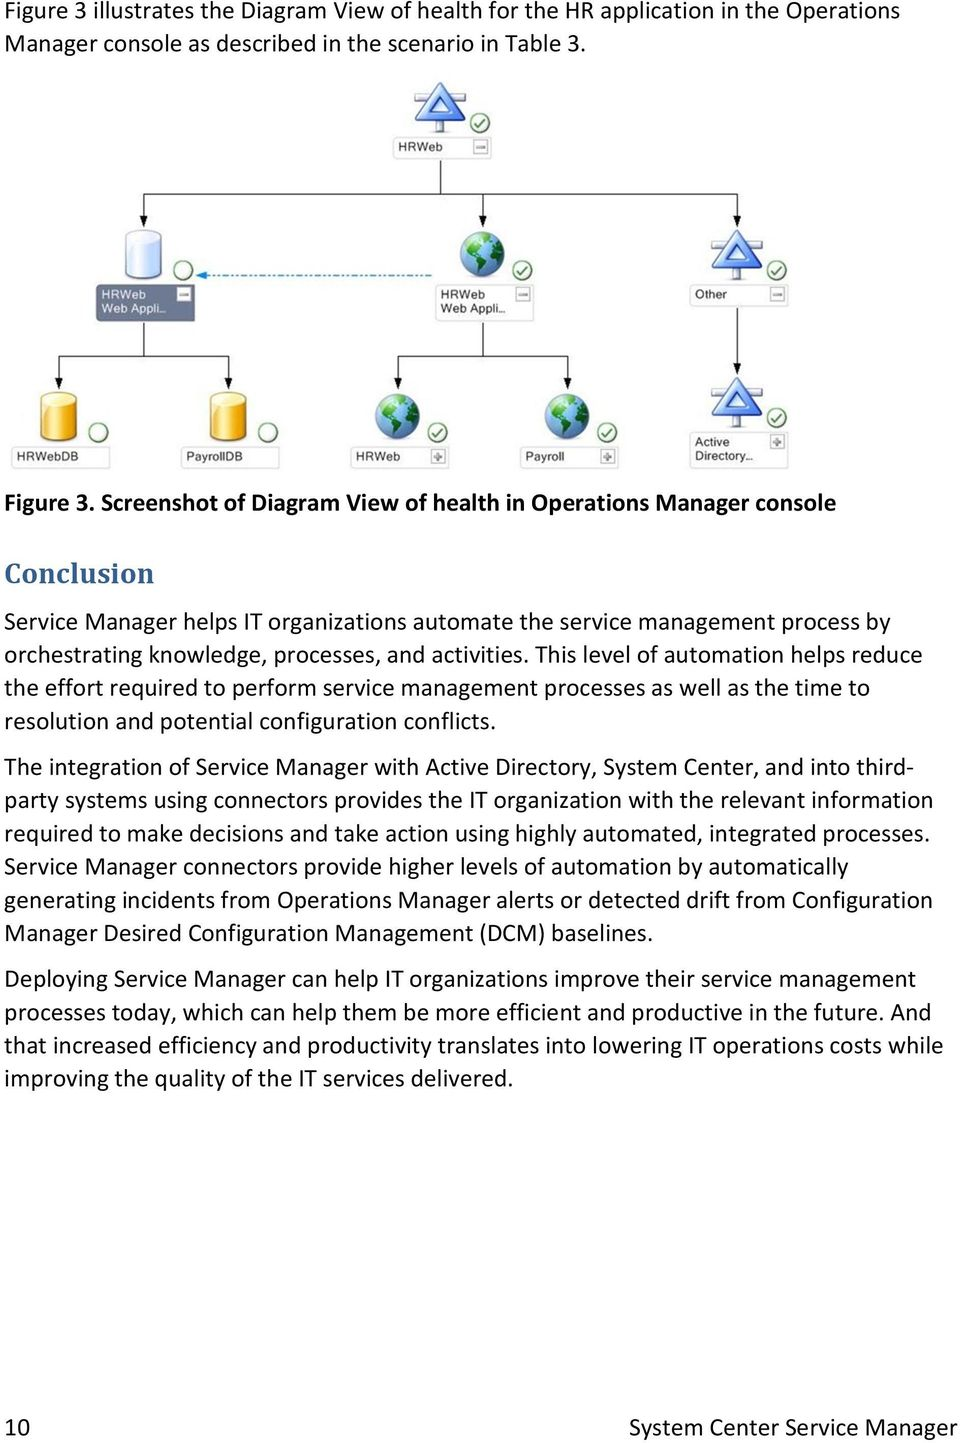 activities. This level of automation helps reduce the effort required to perform service management processes as well as the time to resolution and potential configuration conflicts.